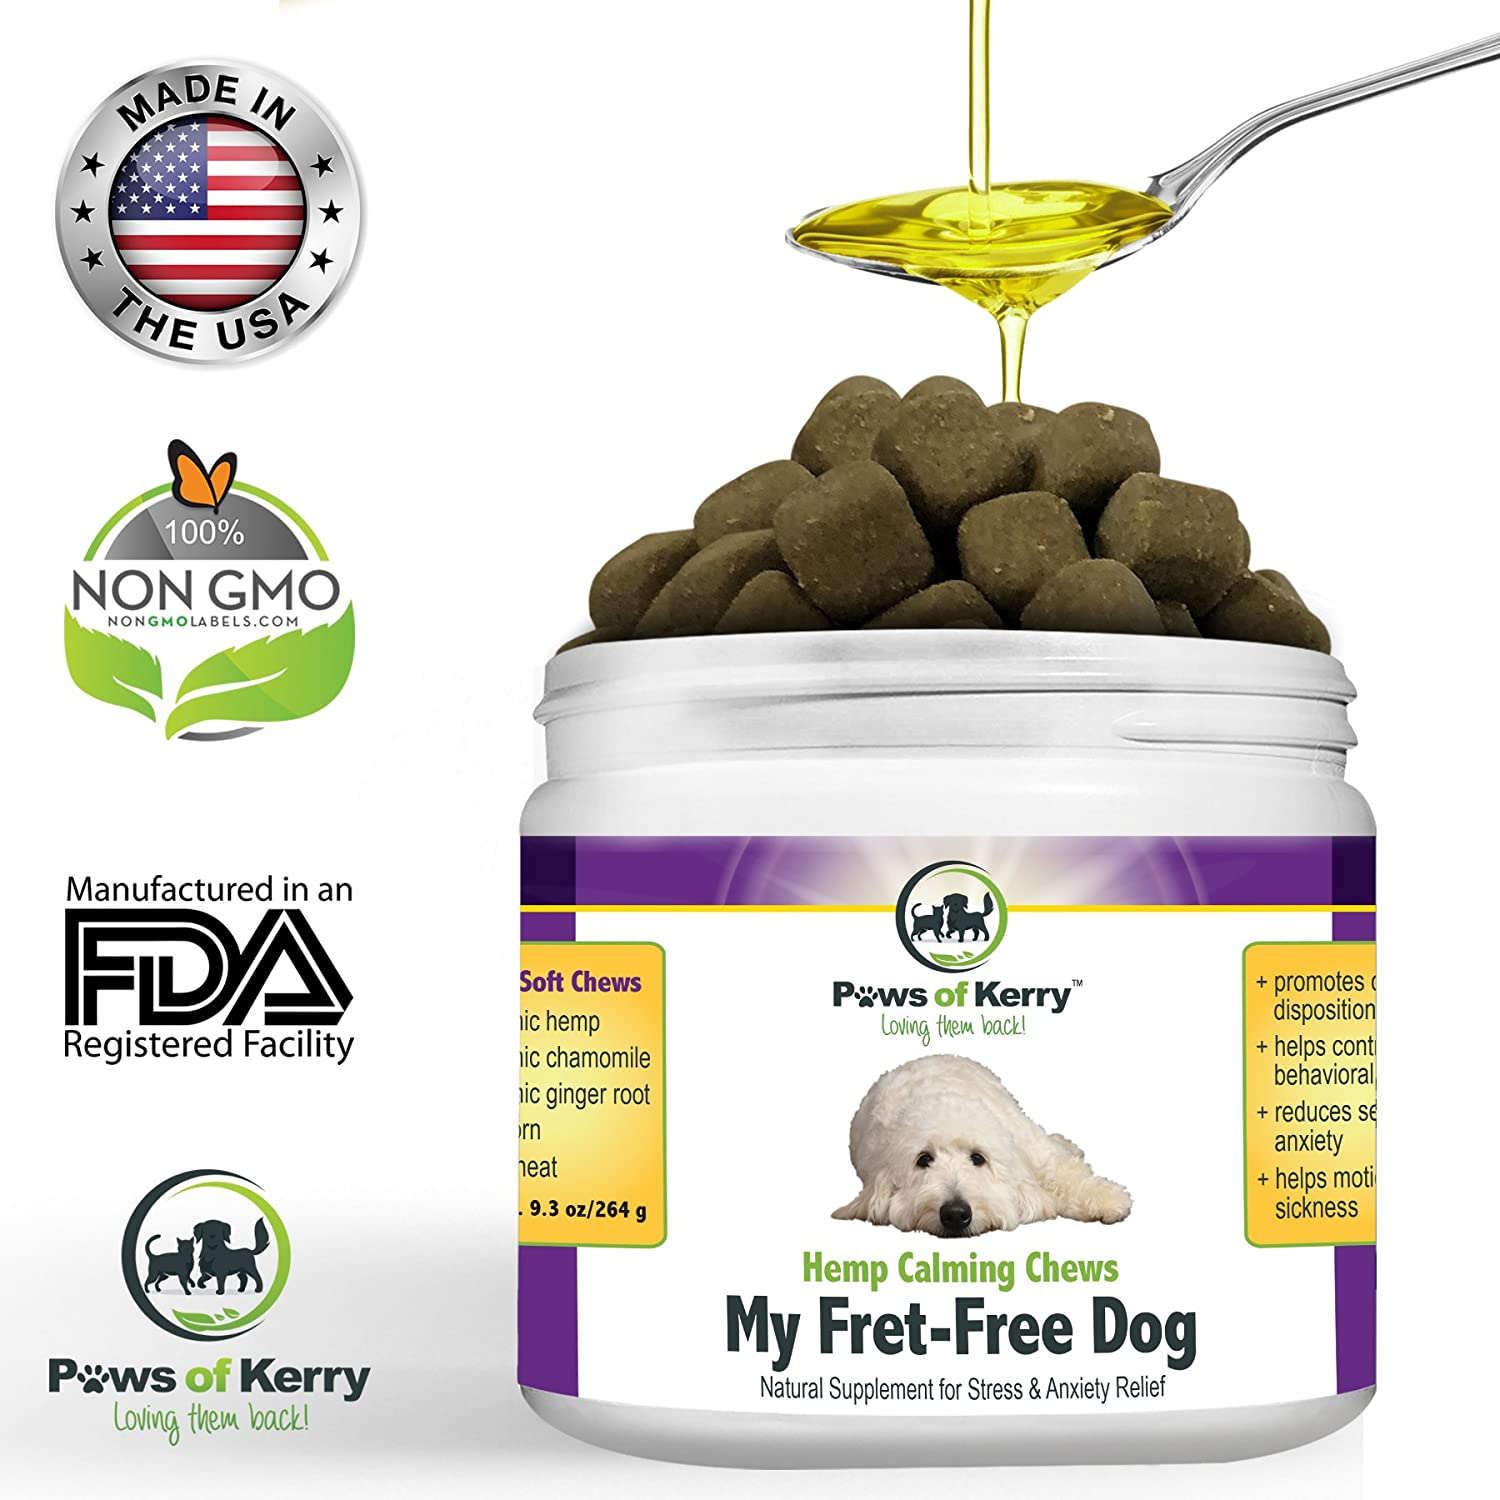 #1 Calming Treats for Dogs Anxiety, Stress Relief from Separation Anxiety, Natural Calming Aid for Motion Sickness, Storms with Organic Hemp Oil, L-Tryptophan & Organic Chamomile |120 Soft Chews USA. Paws of Kerry